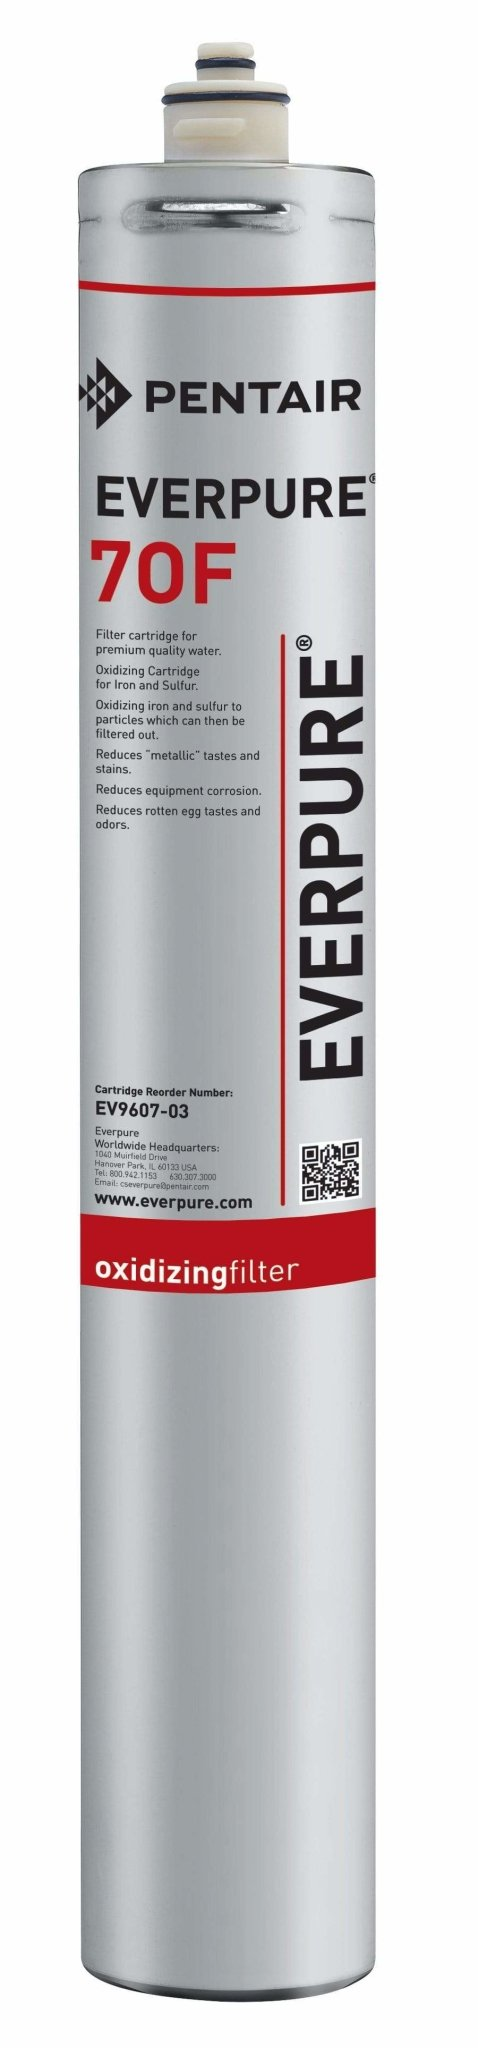 Everpure 7OF Cartridge EV9607-03 - Efilters.net